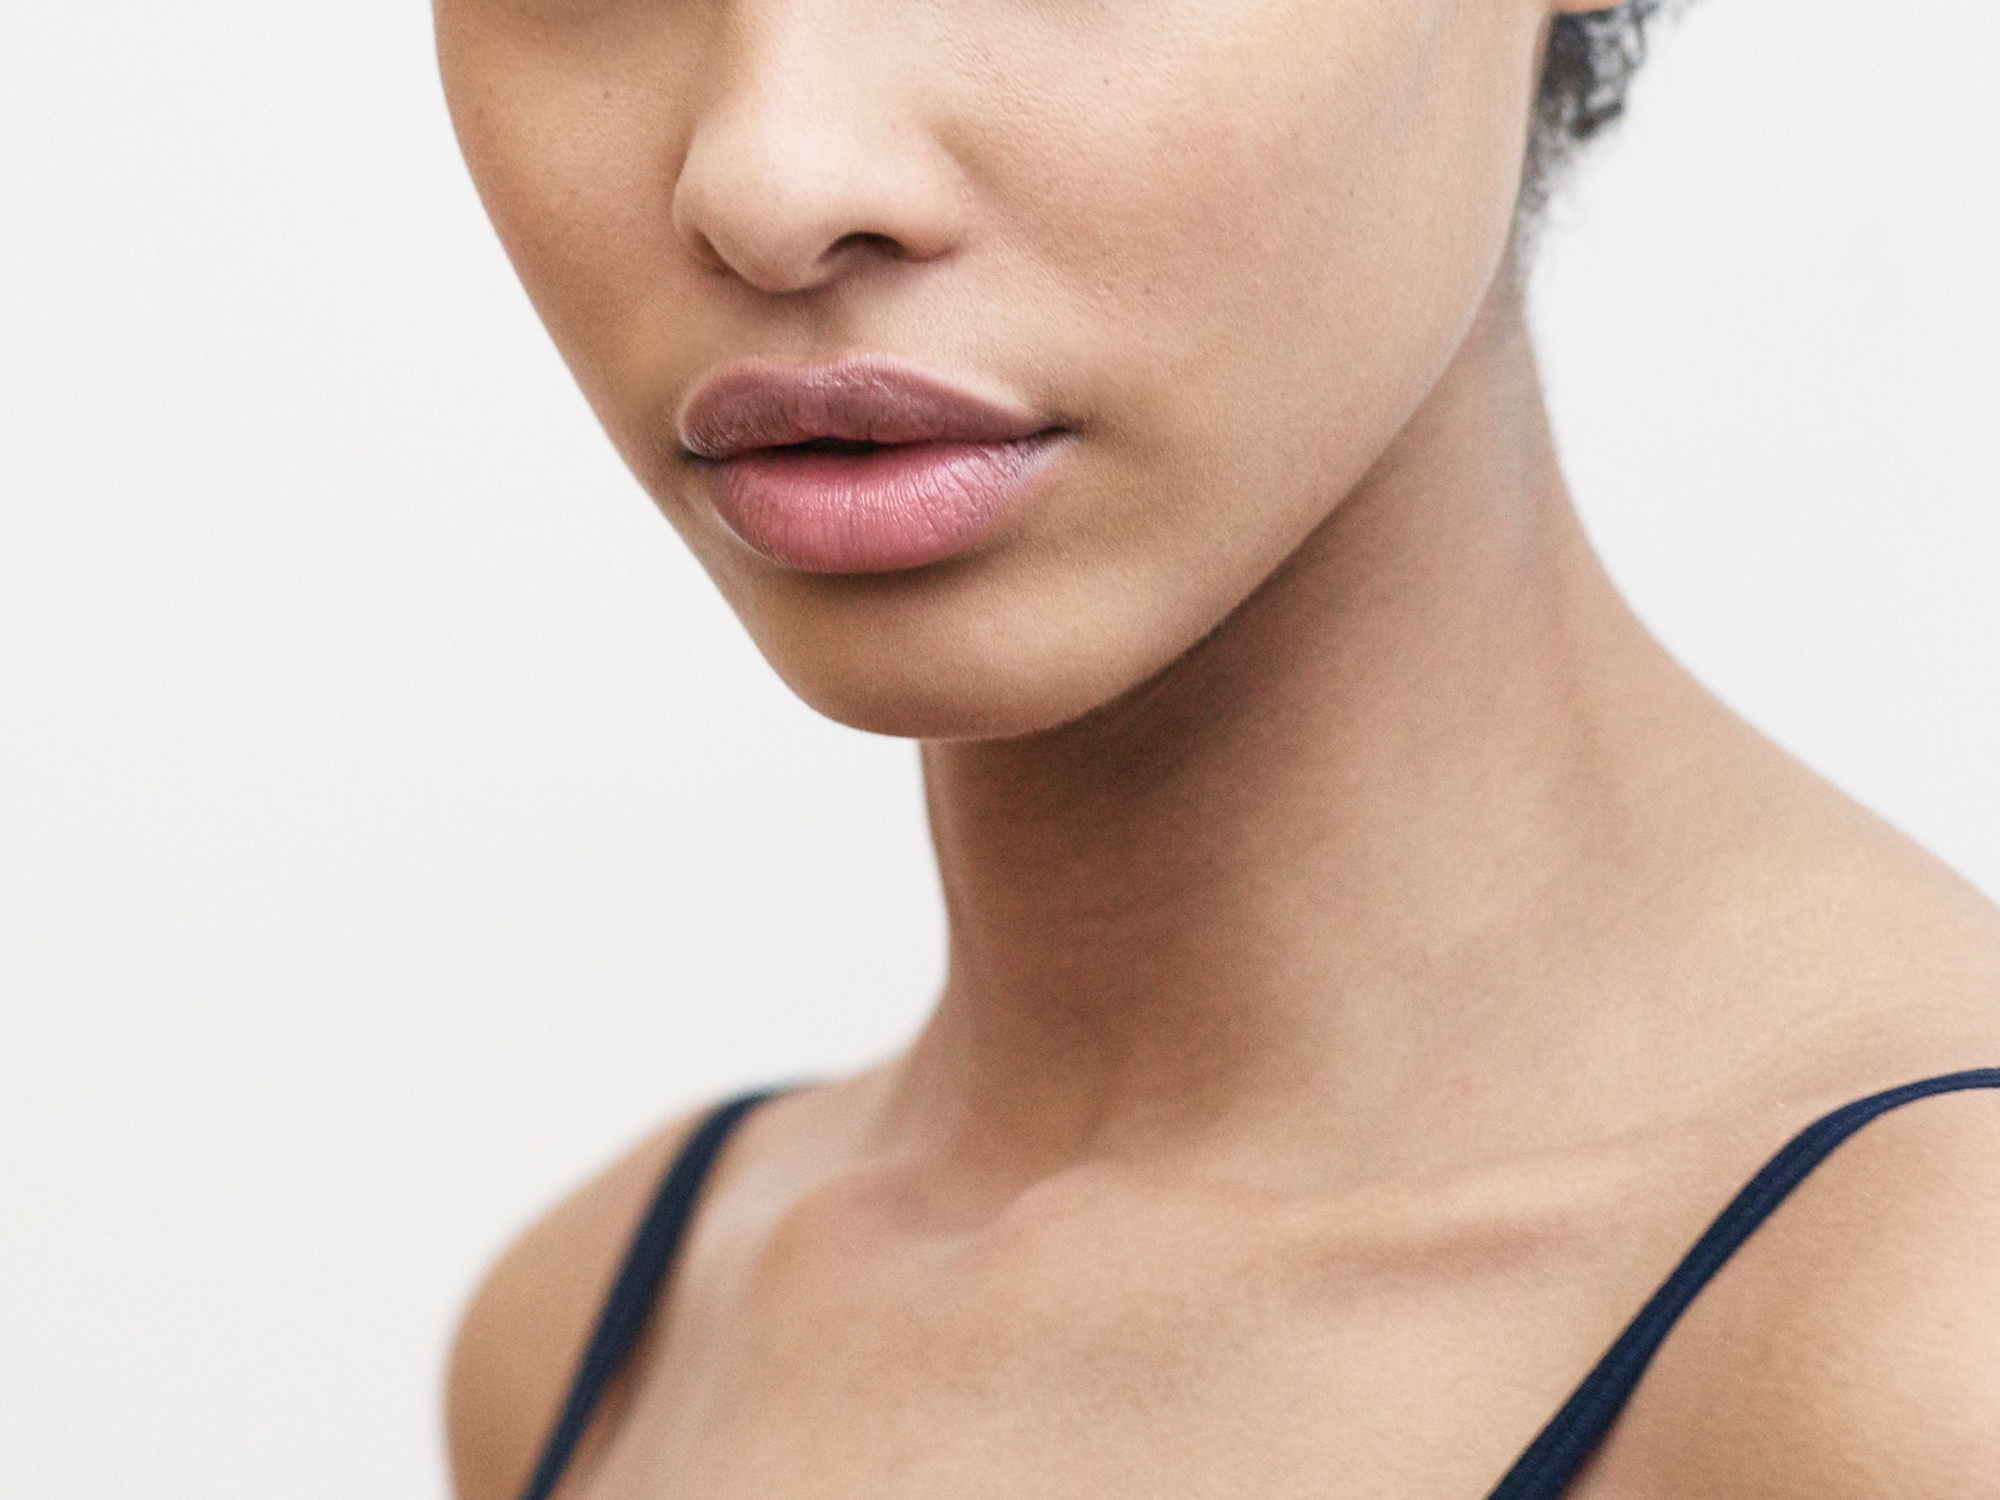 How to Exfoliate Your DryWinter Skin